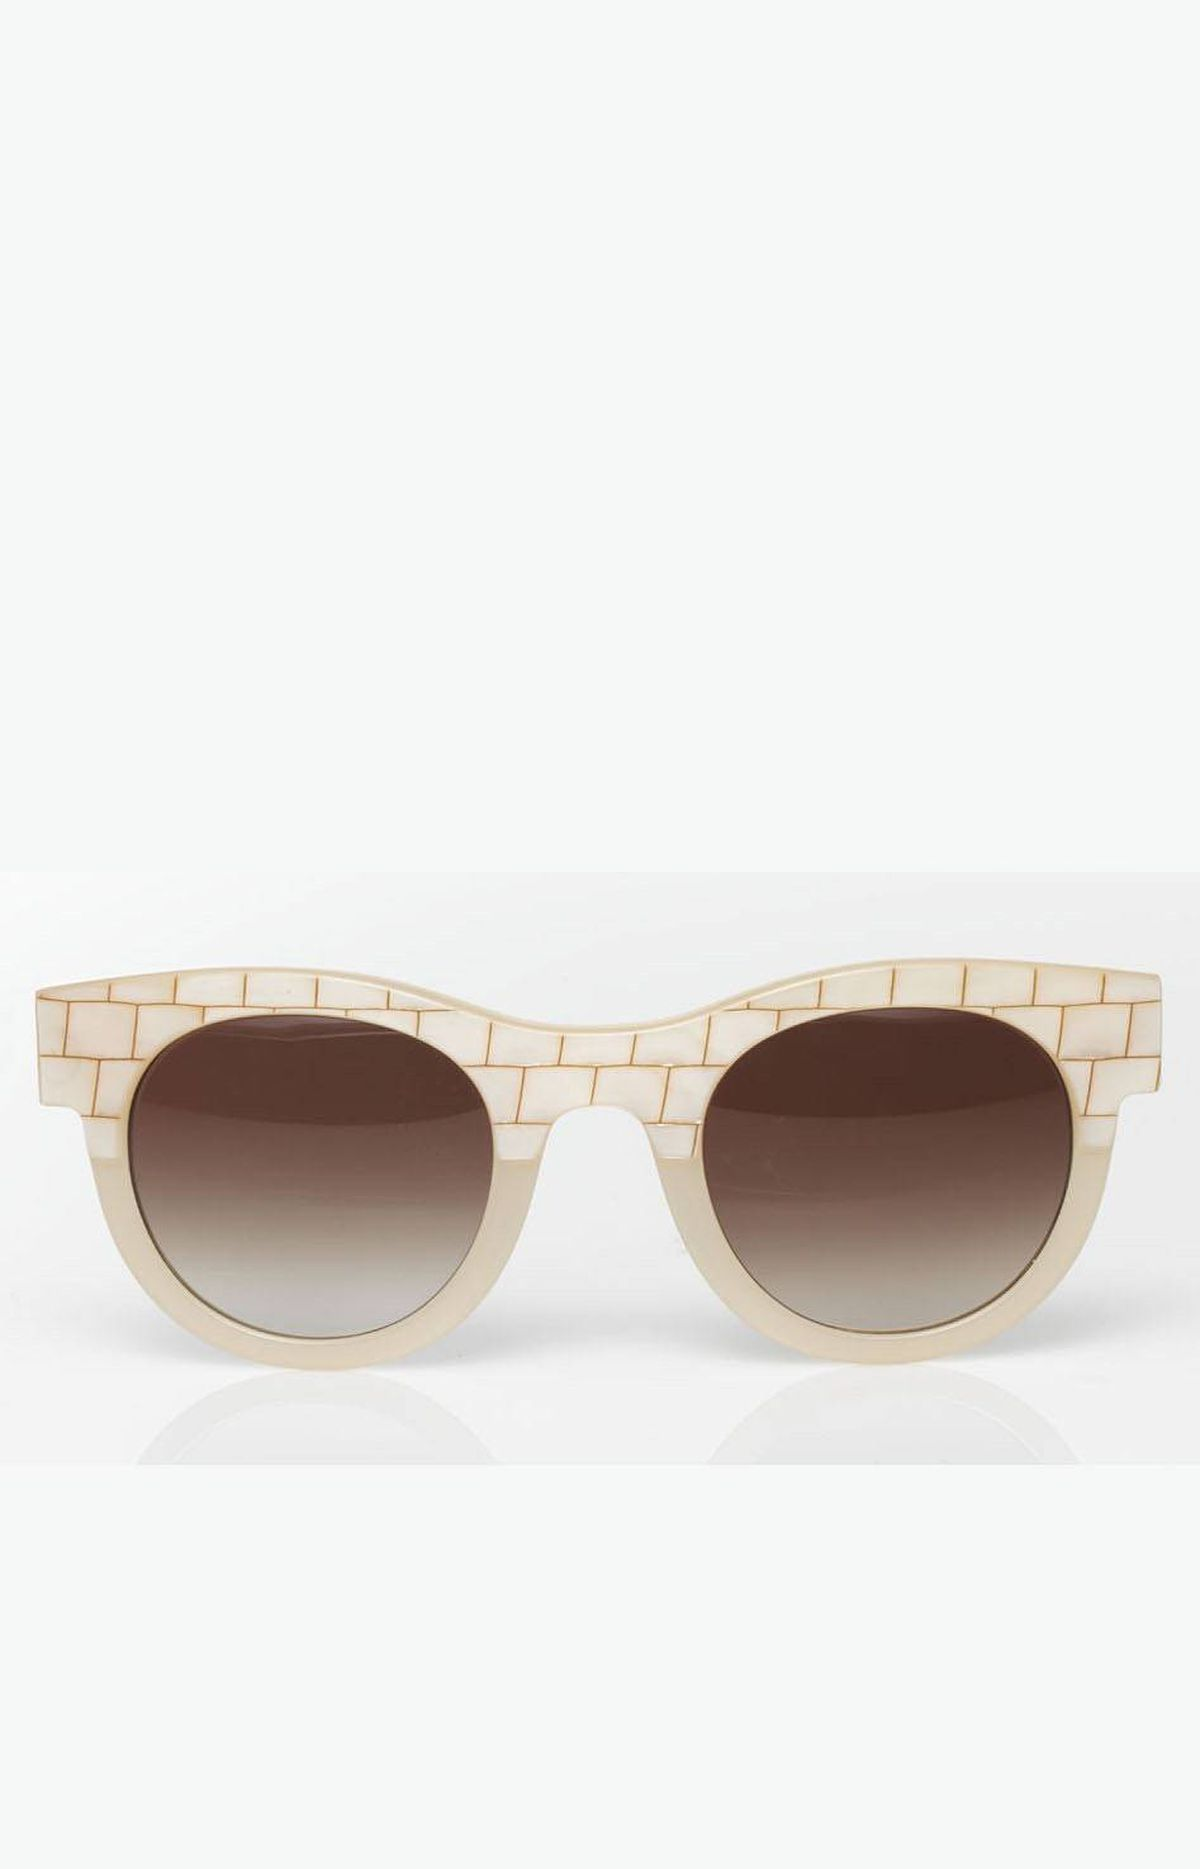 Handmade Adultery sunglasses by Thierry Lasry, $396 at Spectacle (www.spectaclelovesyou.blogspot.com).